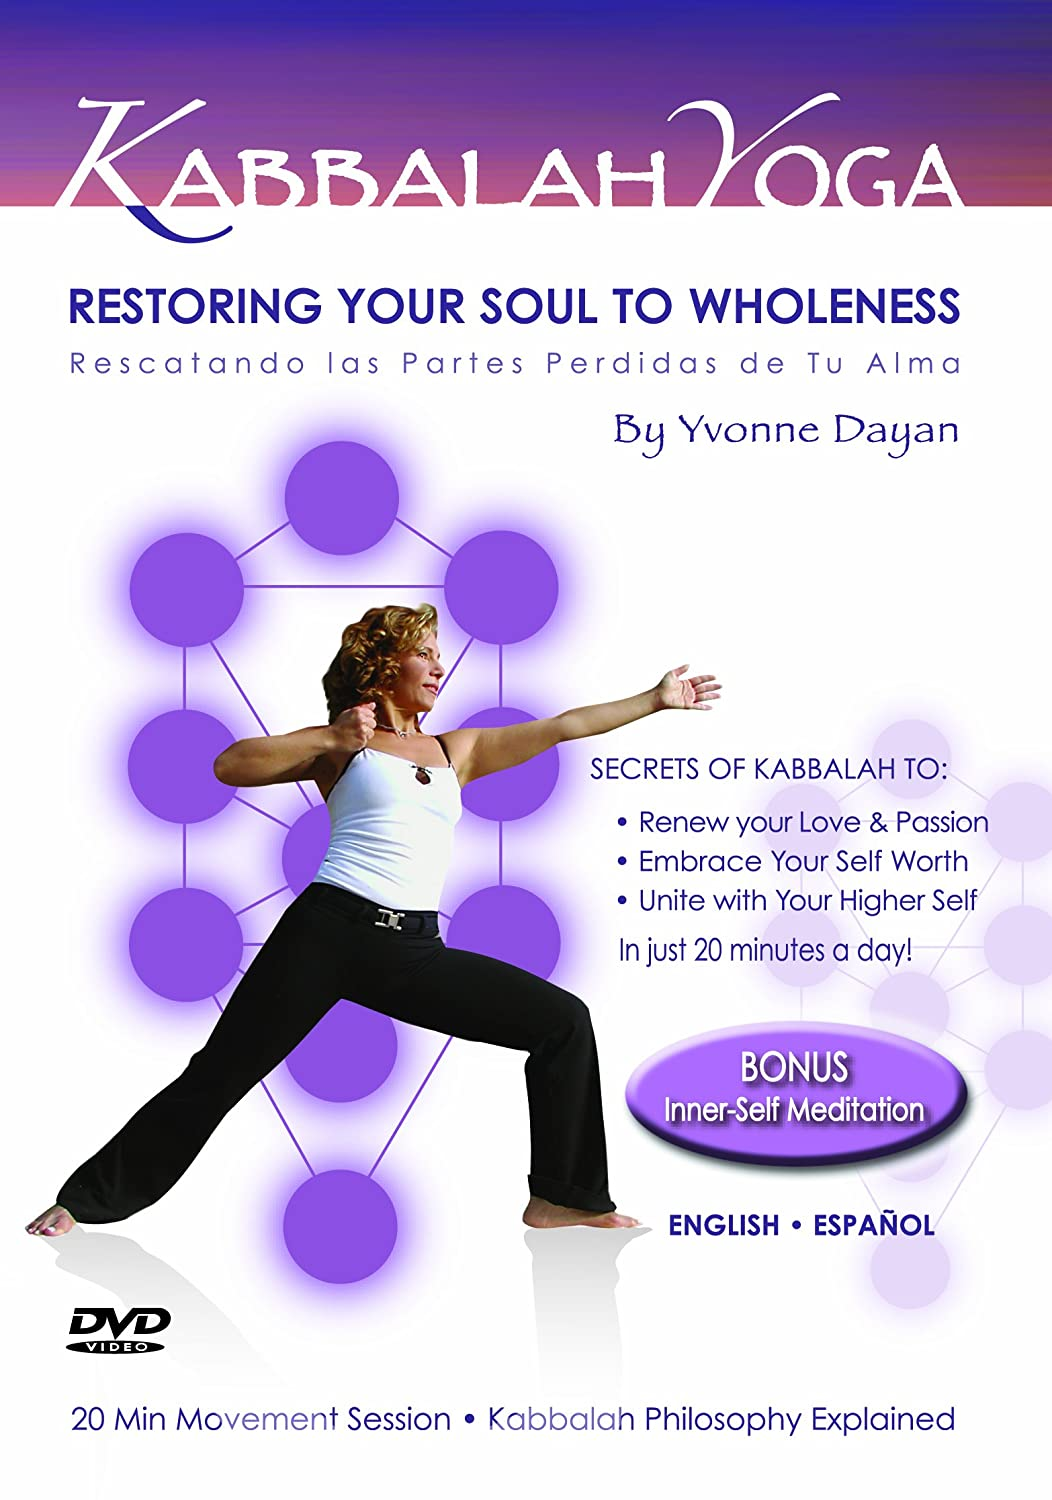 Amazon.com: Kabbalah Yoga: Restoring Your Soul to Wholeness ...